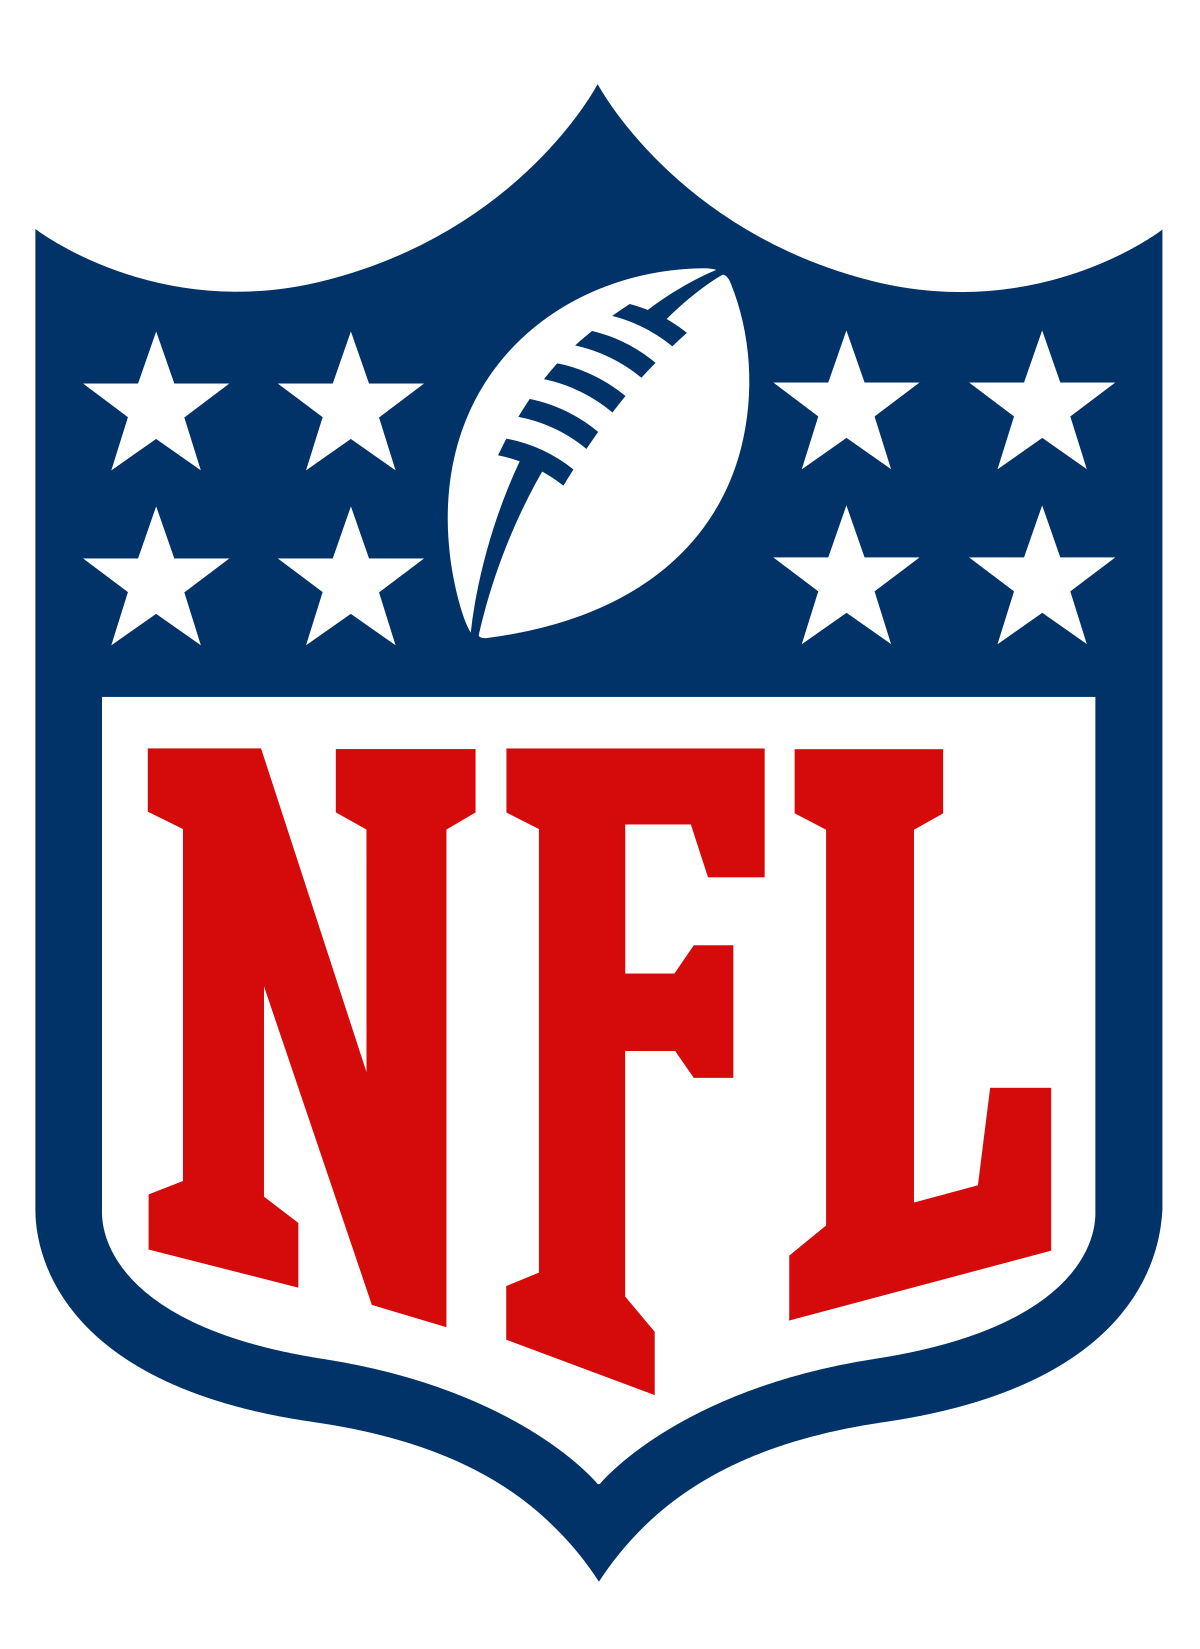 National Football League.